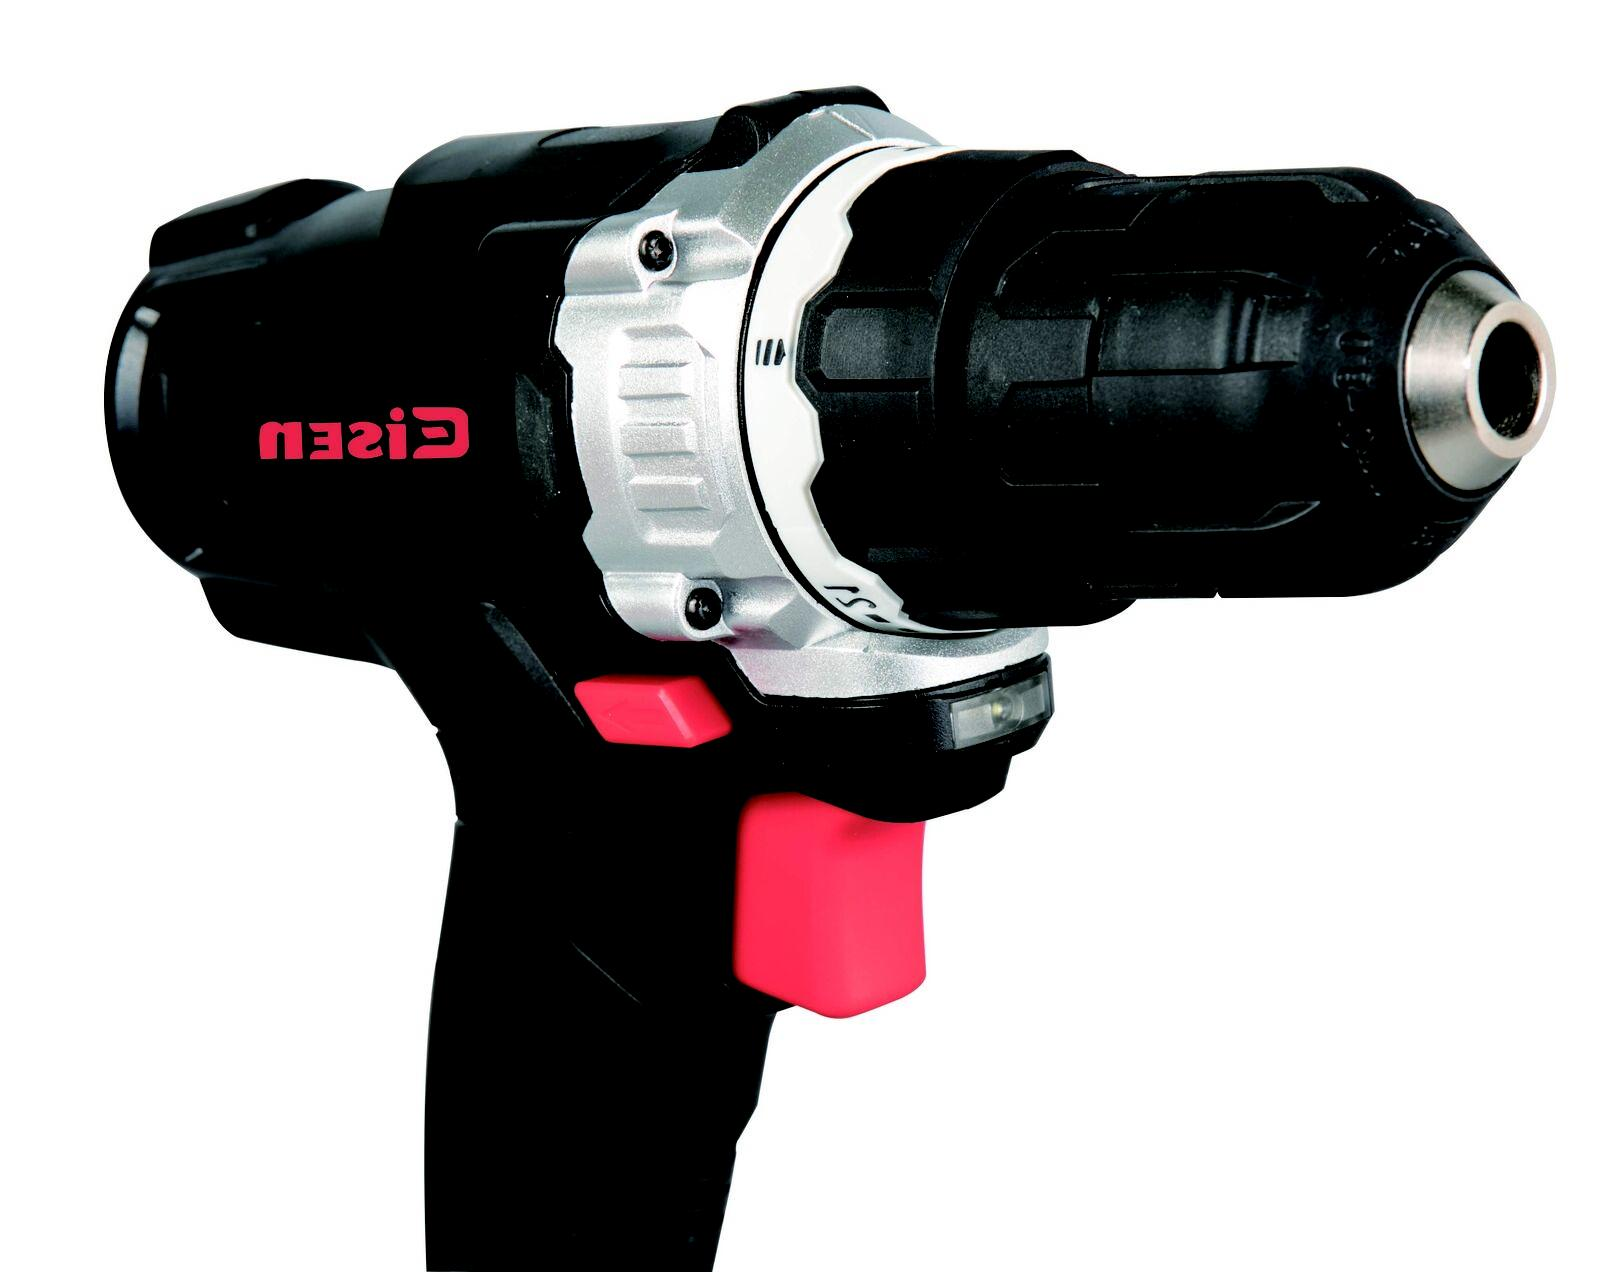 12V Drill, 21+1 With LED Tools